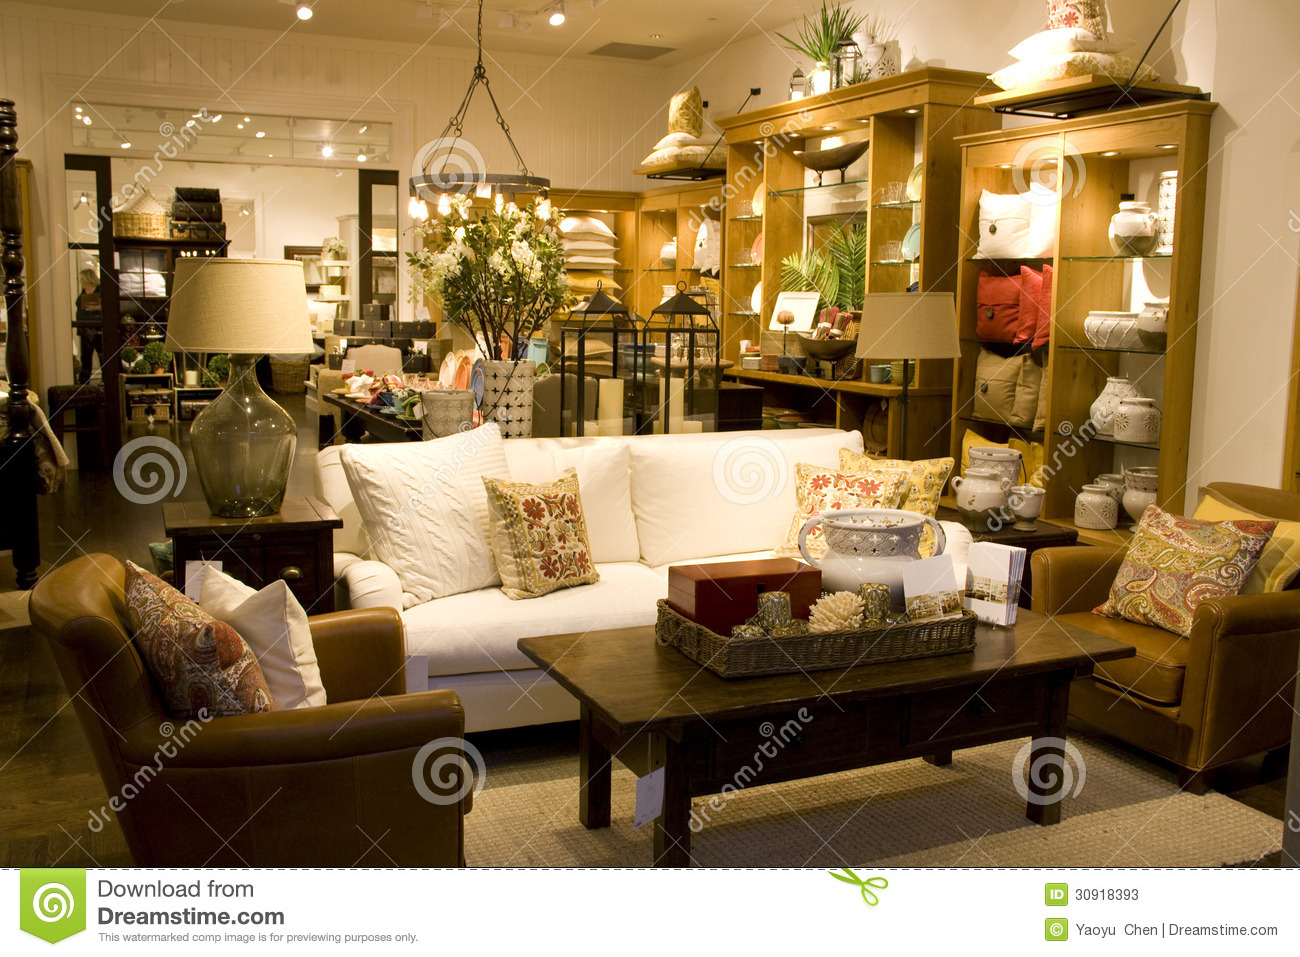 Furniture And Home Decor Store Stock Photos Image 30918393 Store